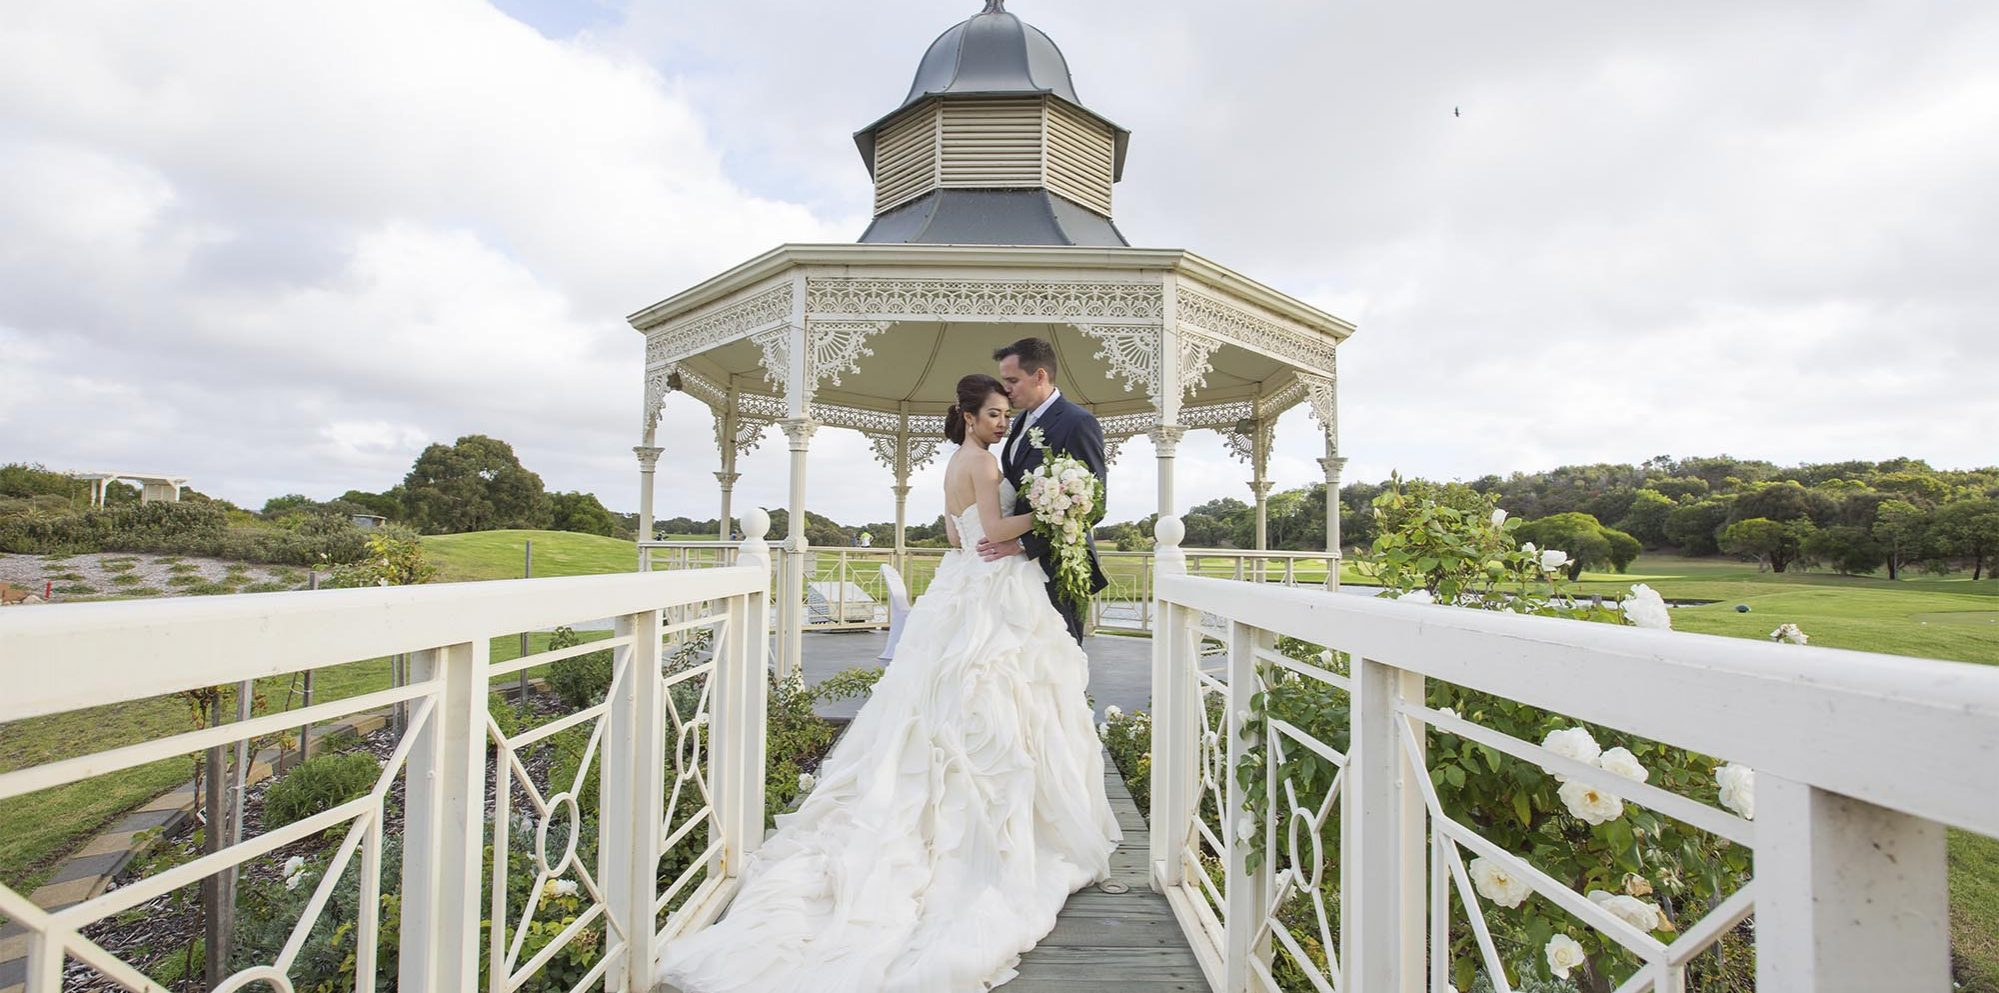 Best wedding venues in mornington peninsula | in a wedding photographer's eye